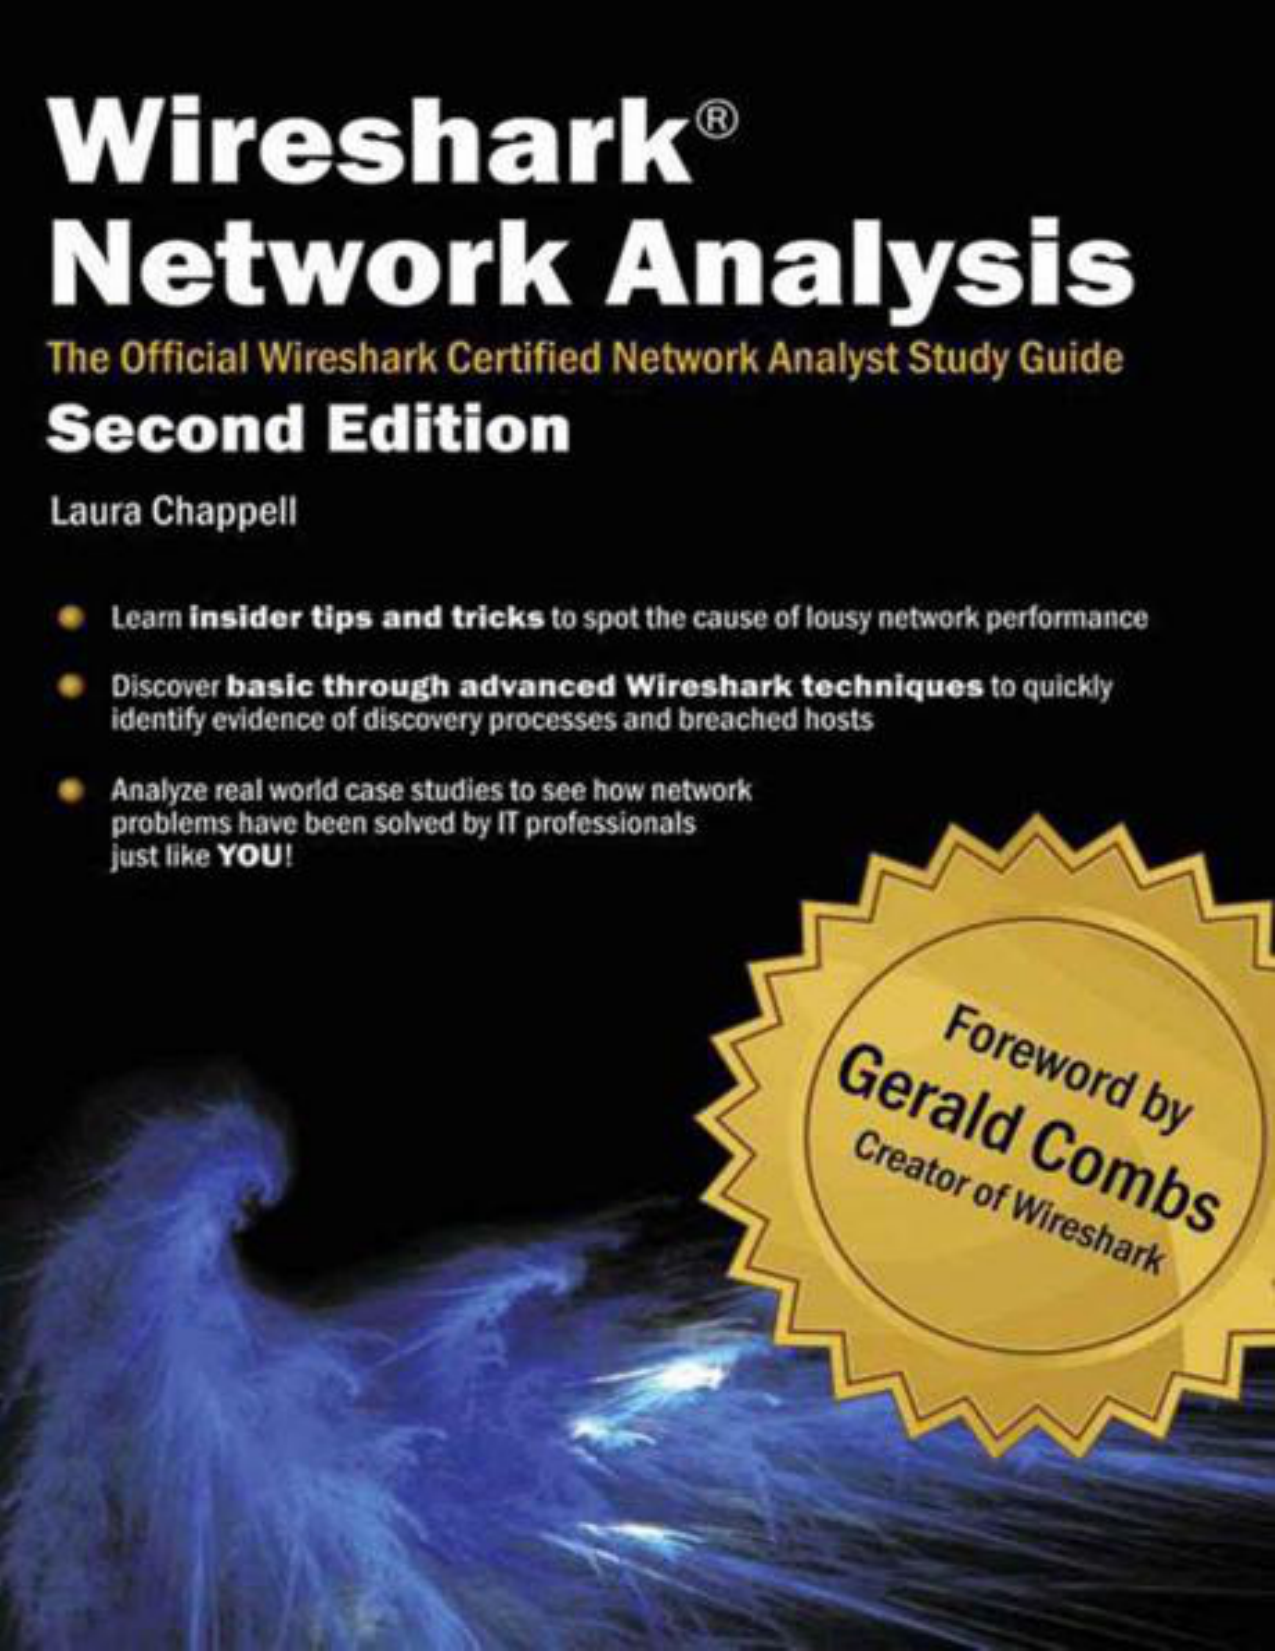 Wireshark Network Analysis The Official Wireshark Certified Network